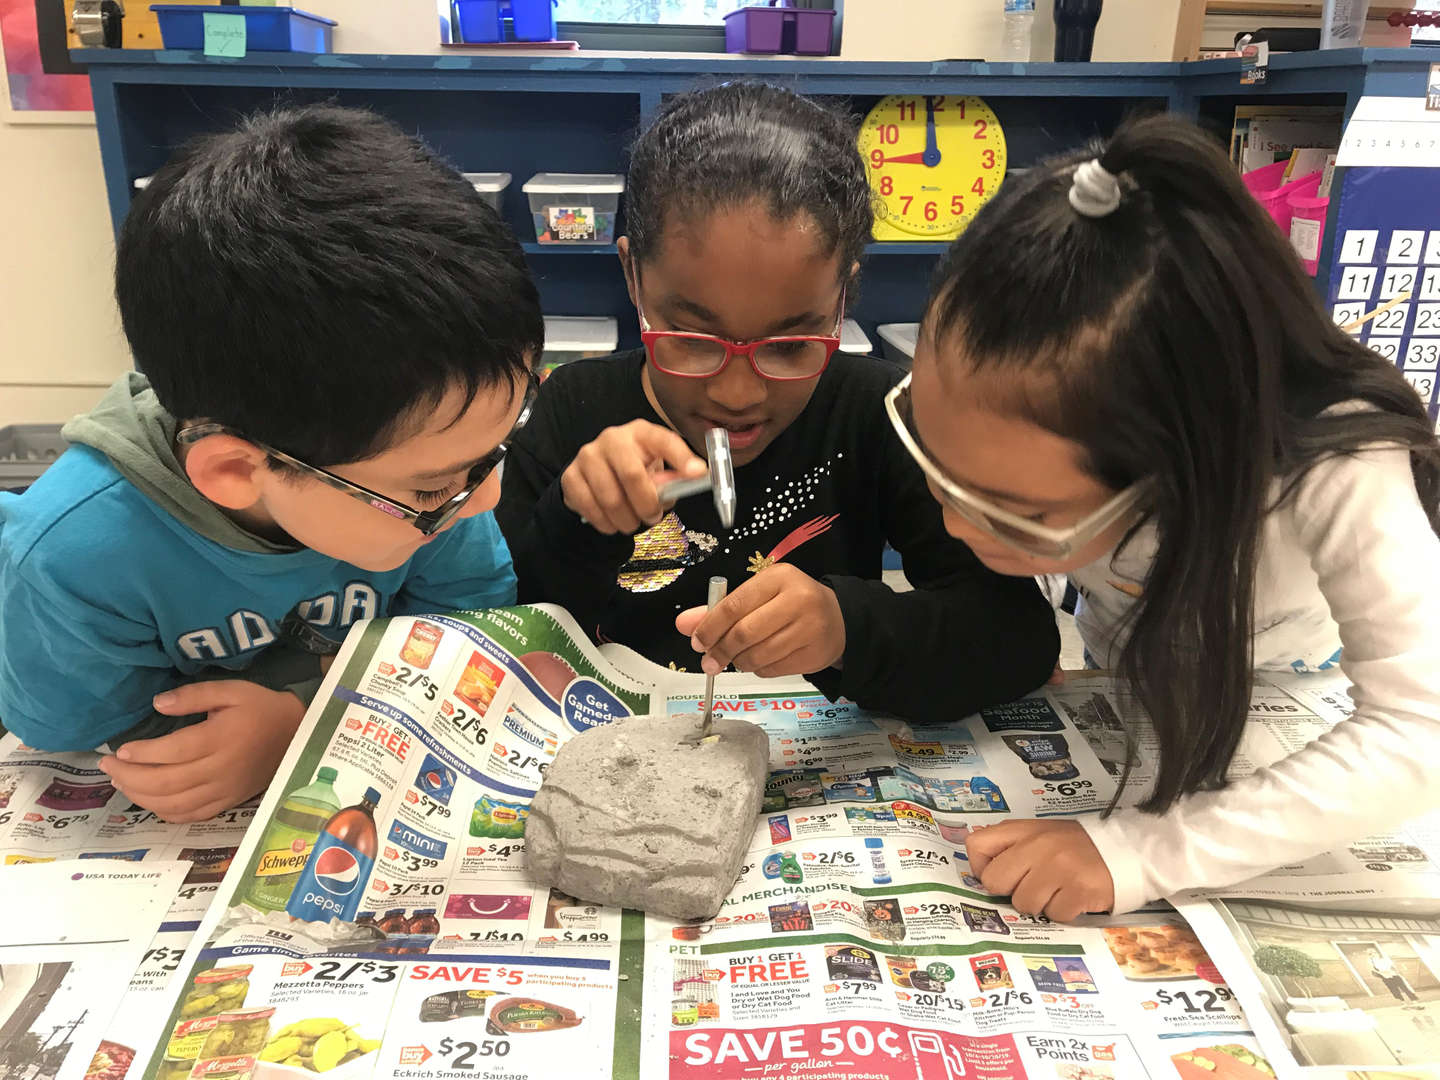 Digging for Dinosaur Fossils, chipping away at rock- Mrs. Gabrielson's 3 students